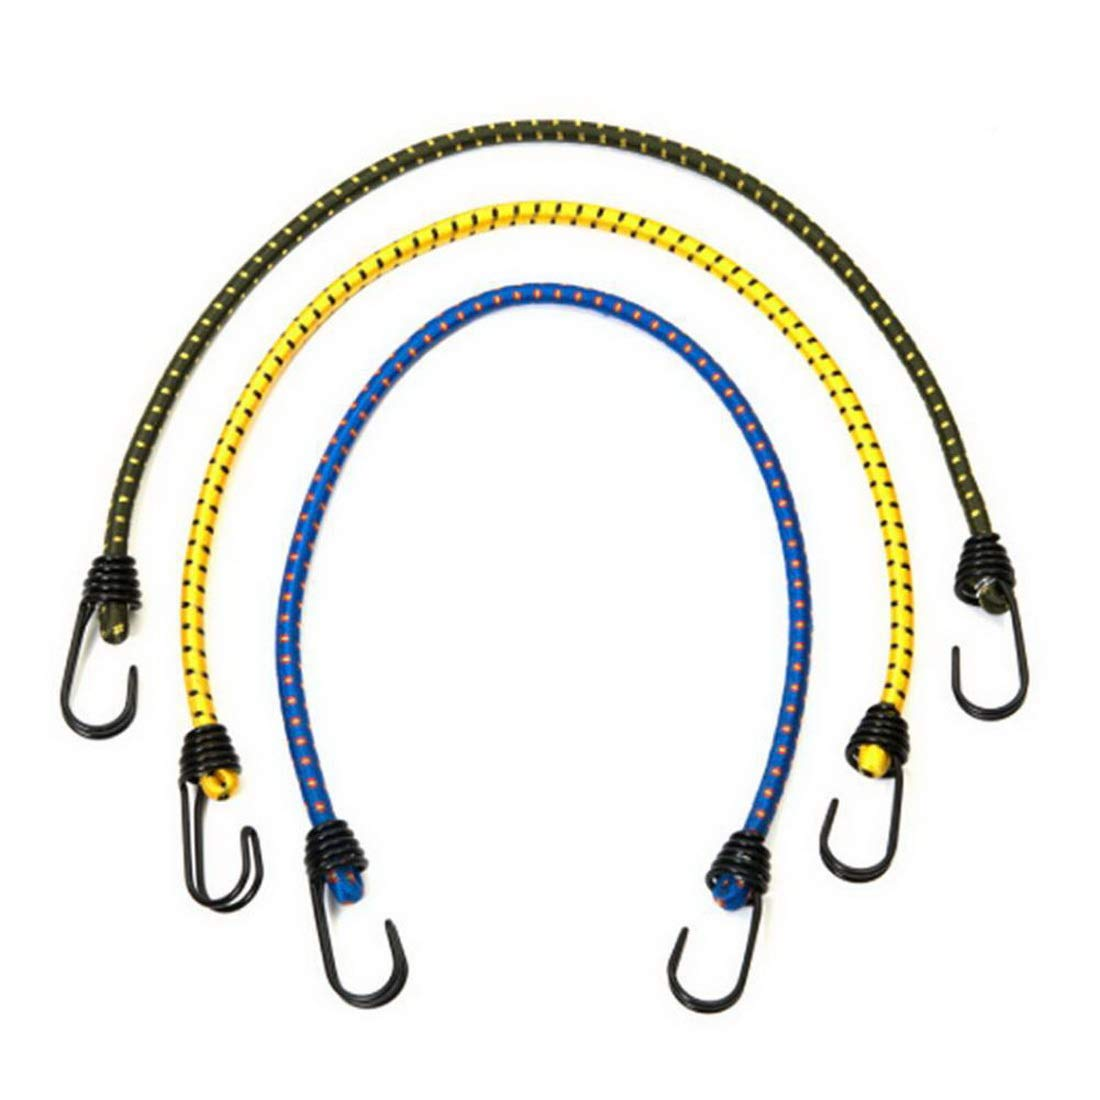 Bungee Cords With Hooks Assortment 3 Pcs Length 23.62 Inch Dia 0.31 Inch Random Color For Cargo Camping Rvs Trunks Luggage Racks - Elastic Shock Cord Tarp Tie Downs by Mega Shop (Image #8)